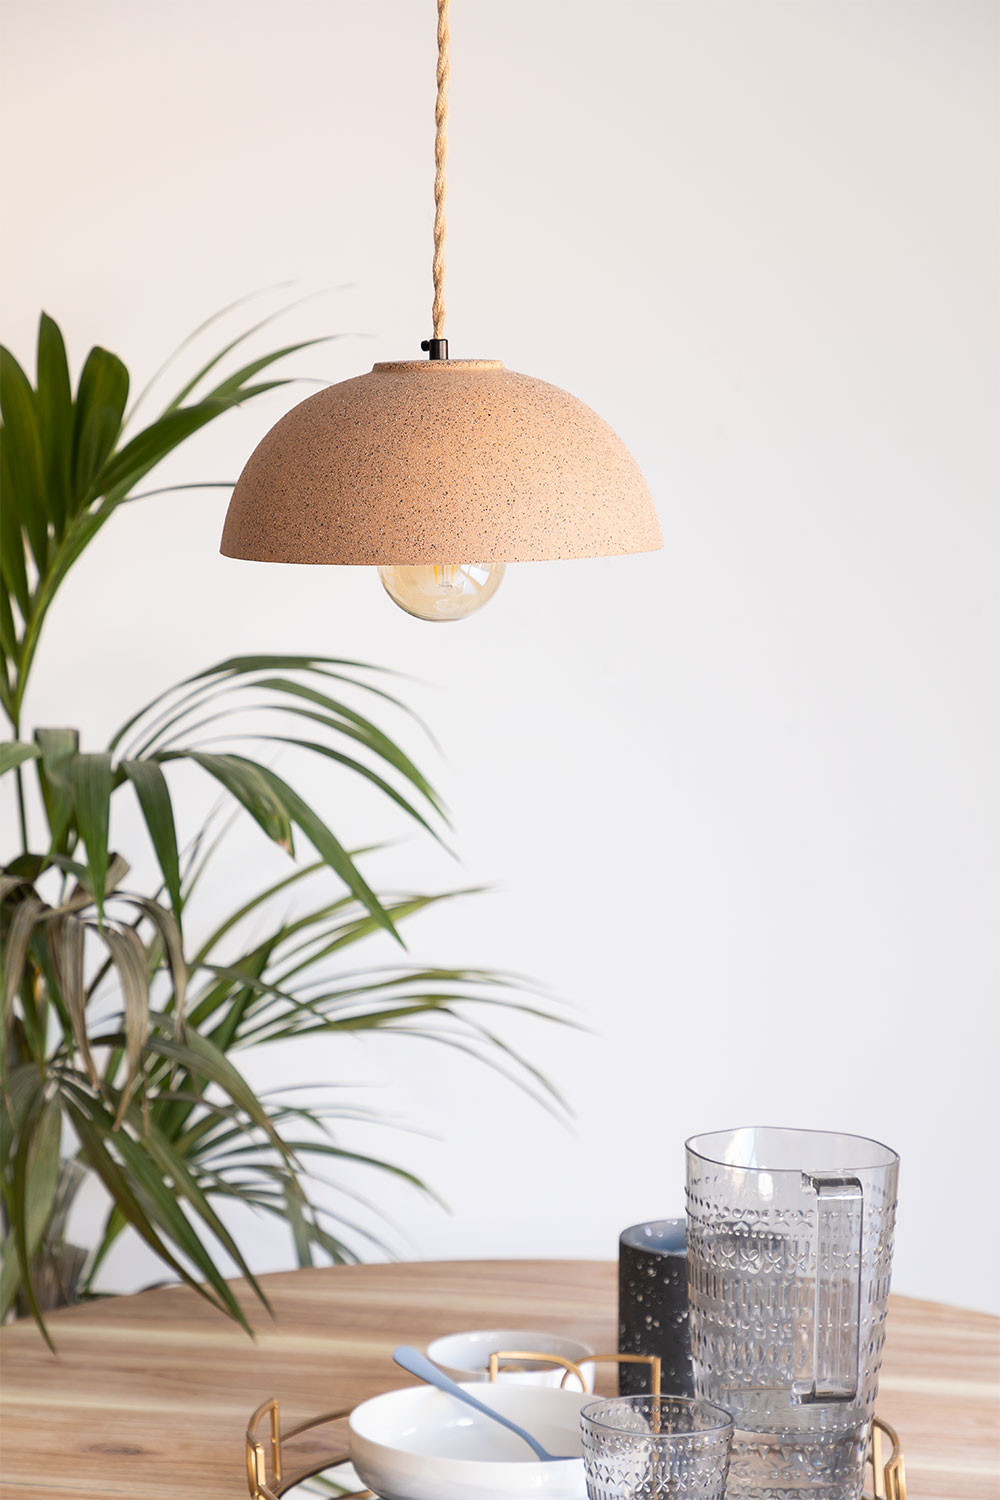 Ceiling Lamp in Porcelain Ouval, gallery image 1